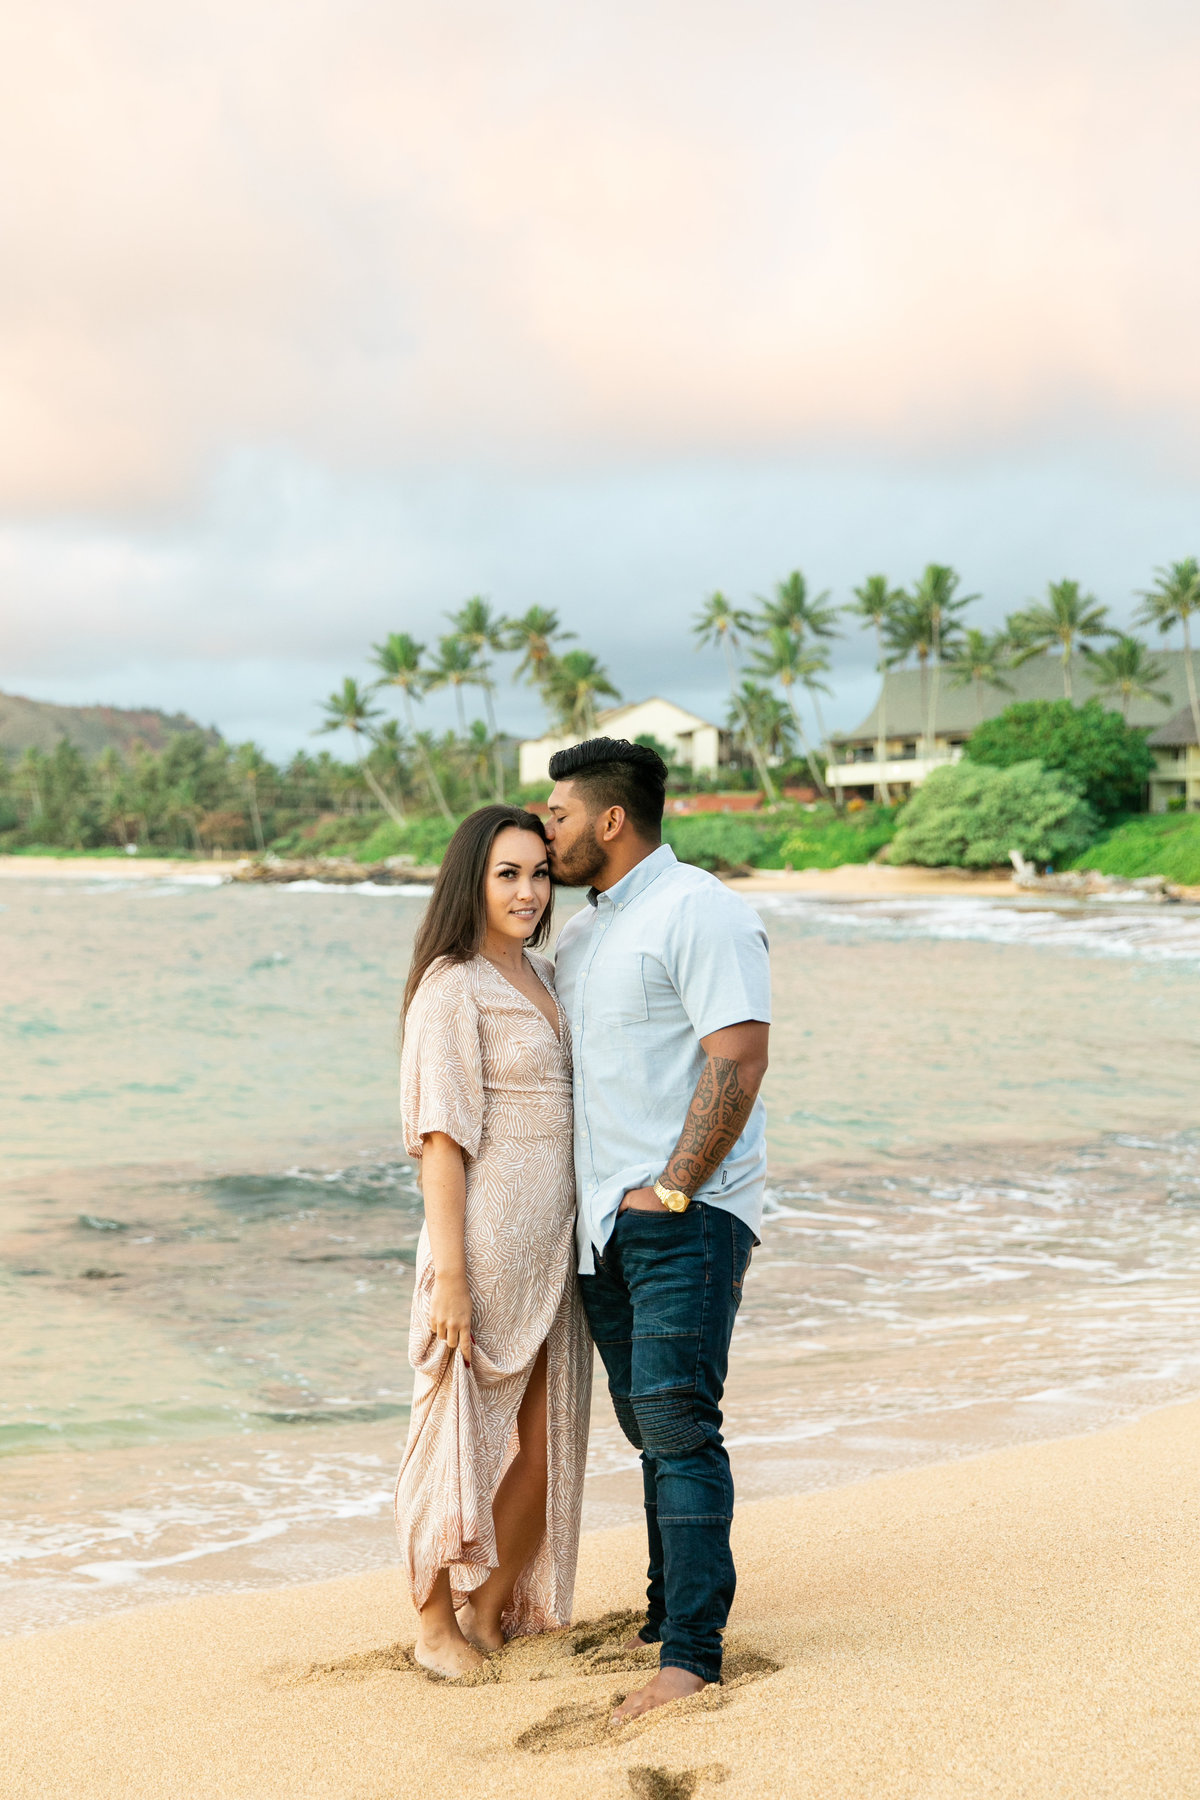 Karlie Colleen Photography - Kauai Hawaii Wedding Photography - Sydney & BJ -7